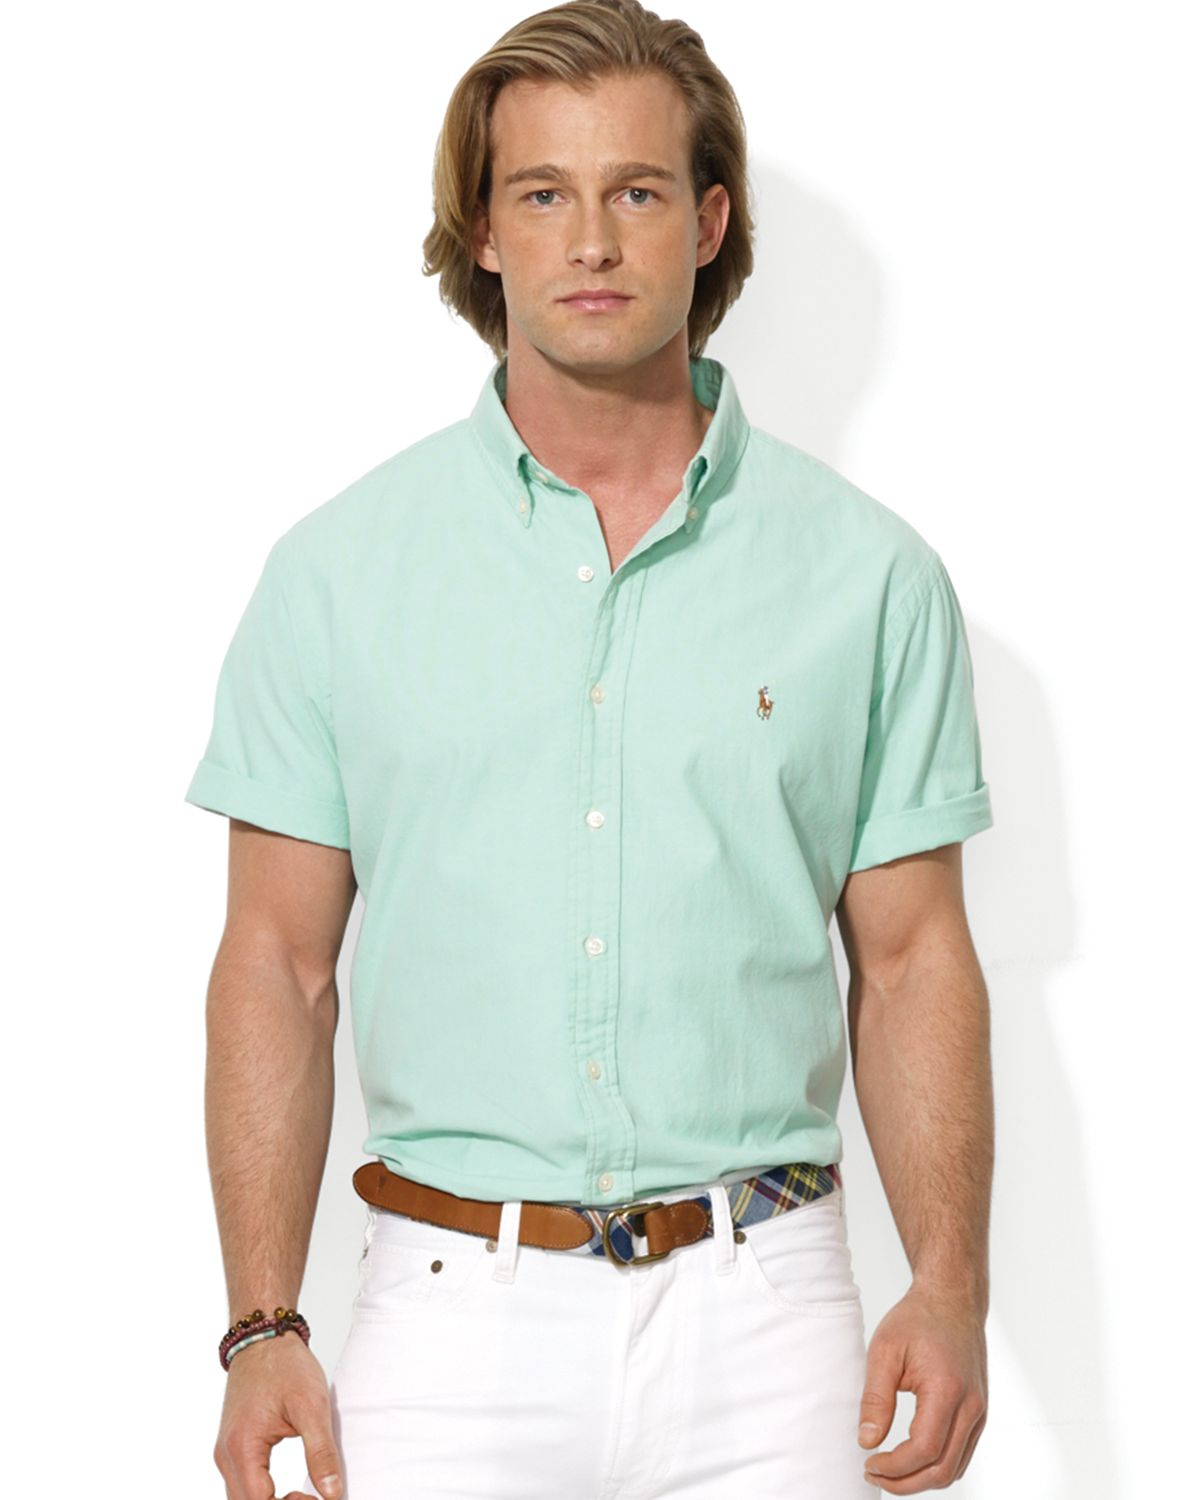 Ralph lauren polo short sleeve chambray sport shirt custom for Mint color polo shirt